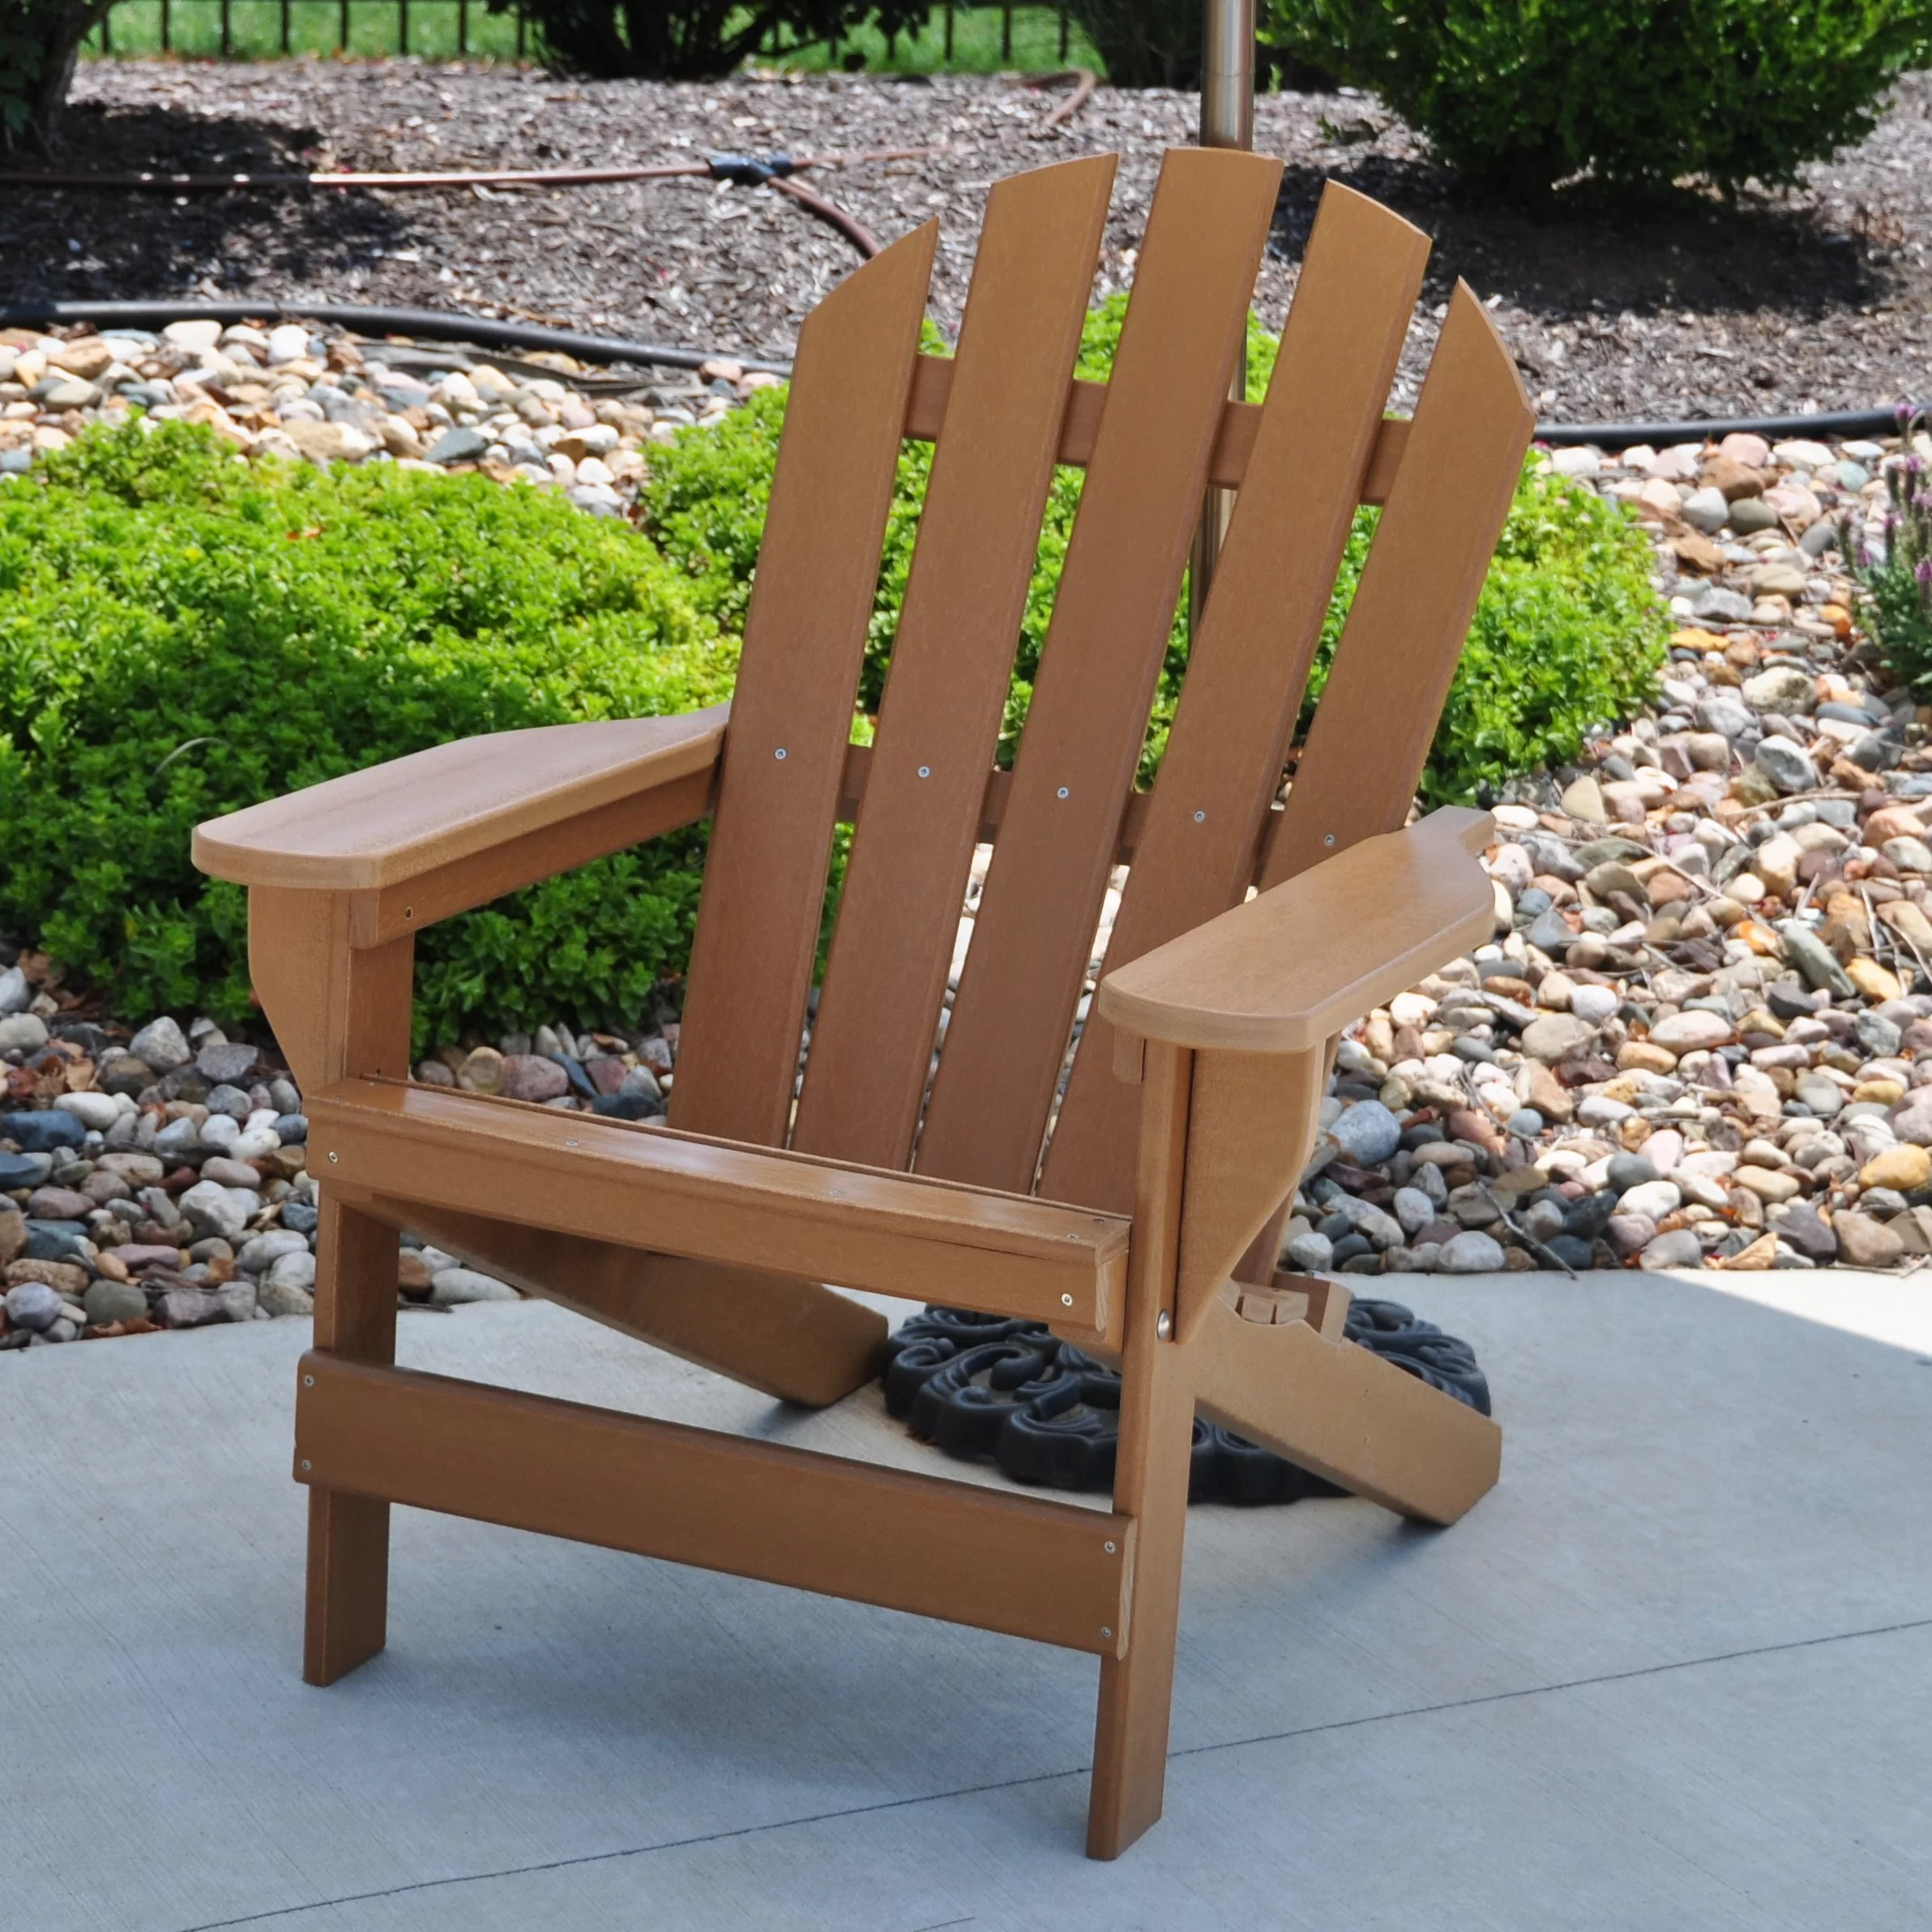 Recycled Adirondack Chairs Frog Furnishings Recycled Plastic Cape Cod Adirondack